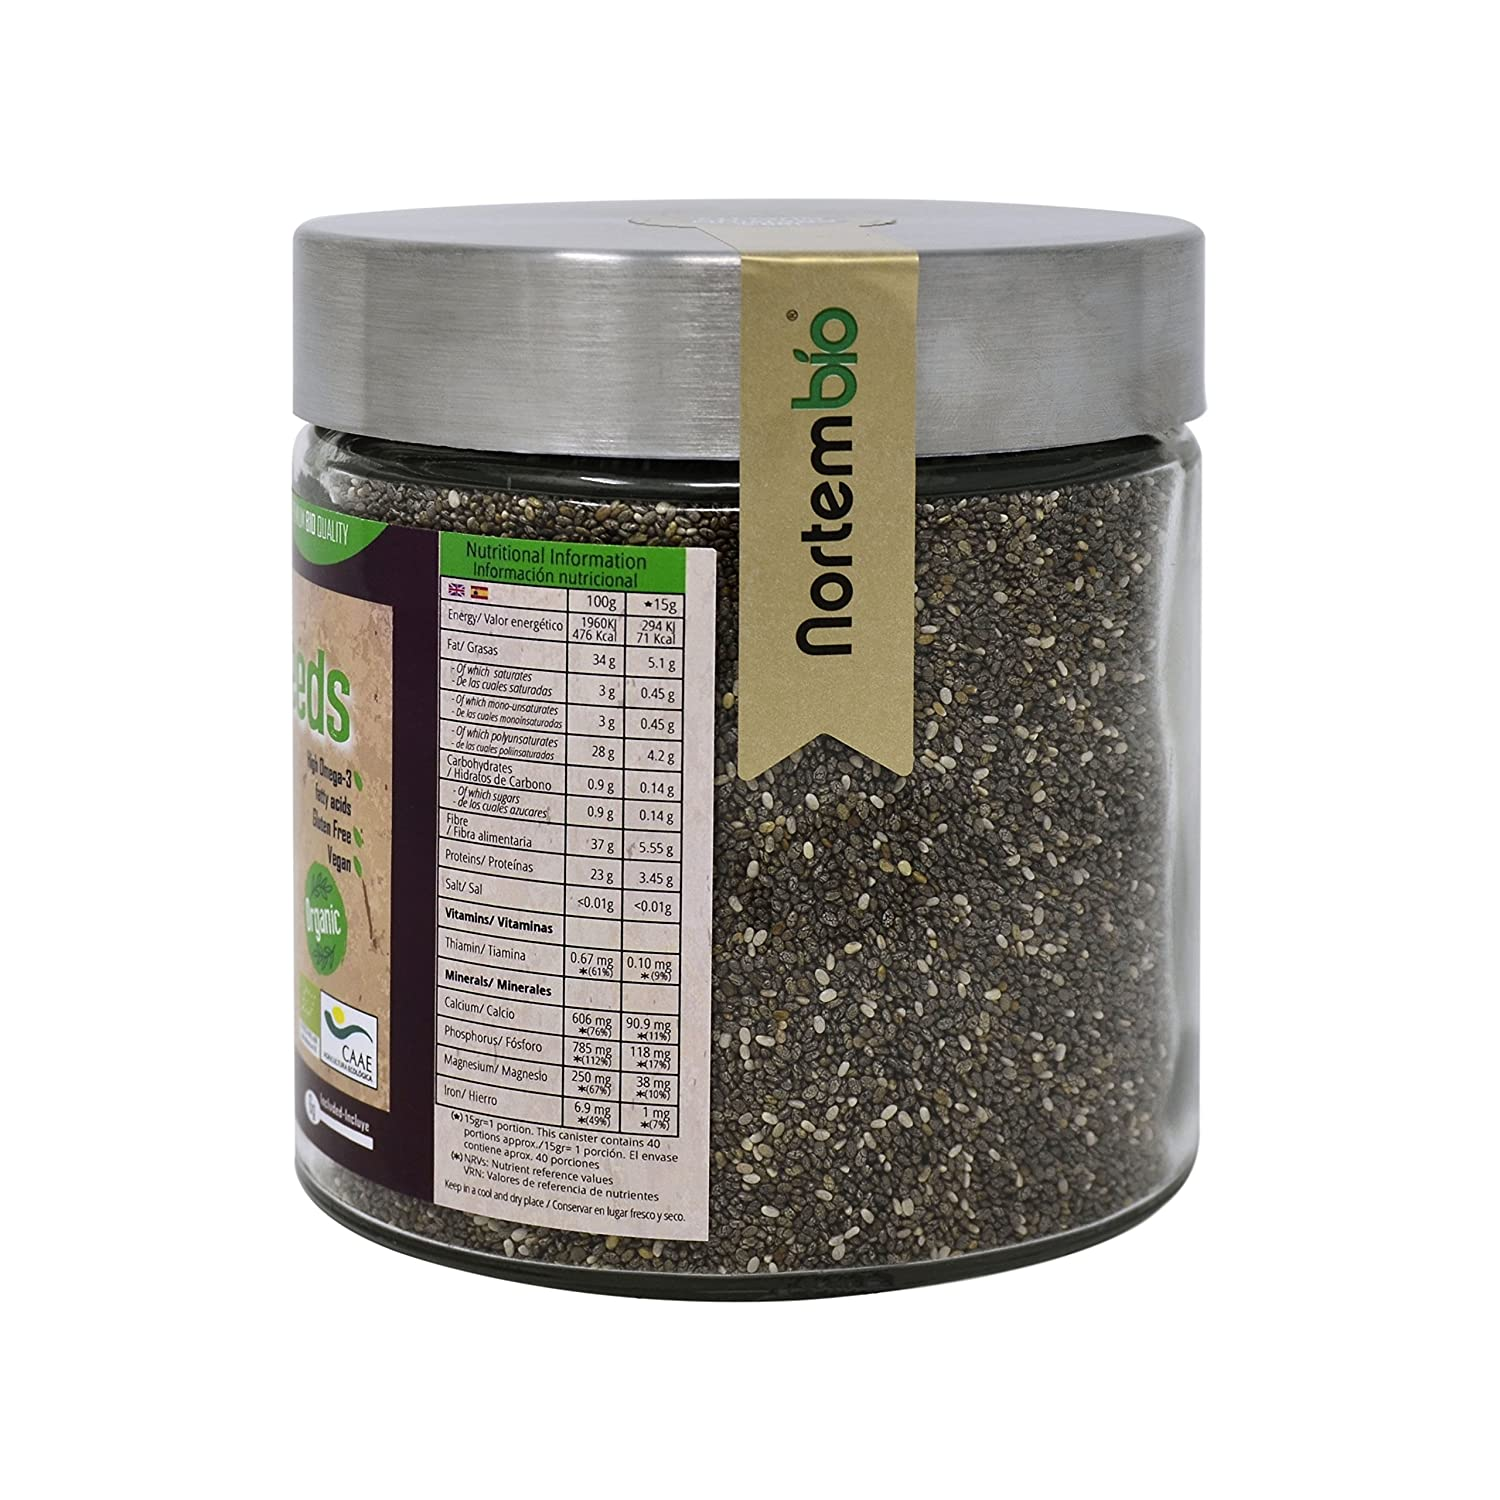 Semillas de Chia (Salvia hispanica) Natural NortemBio 600g ...